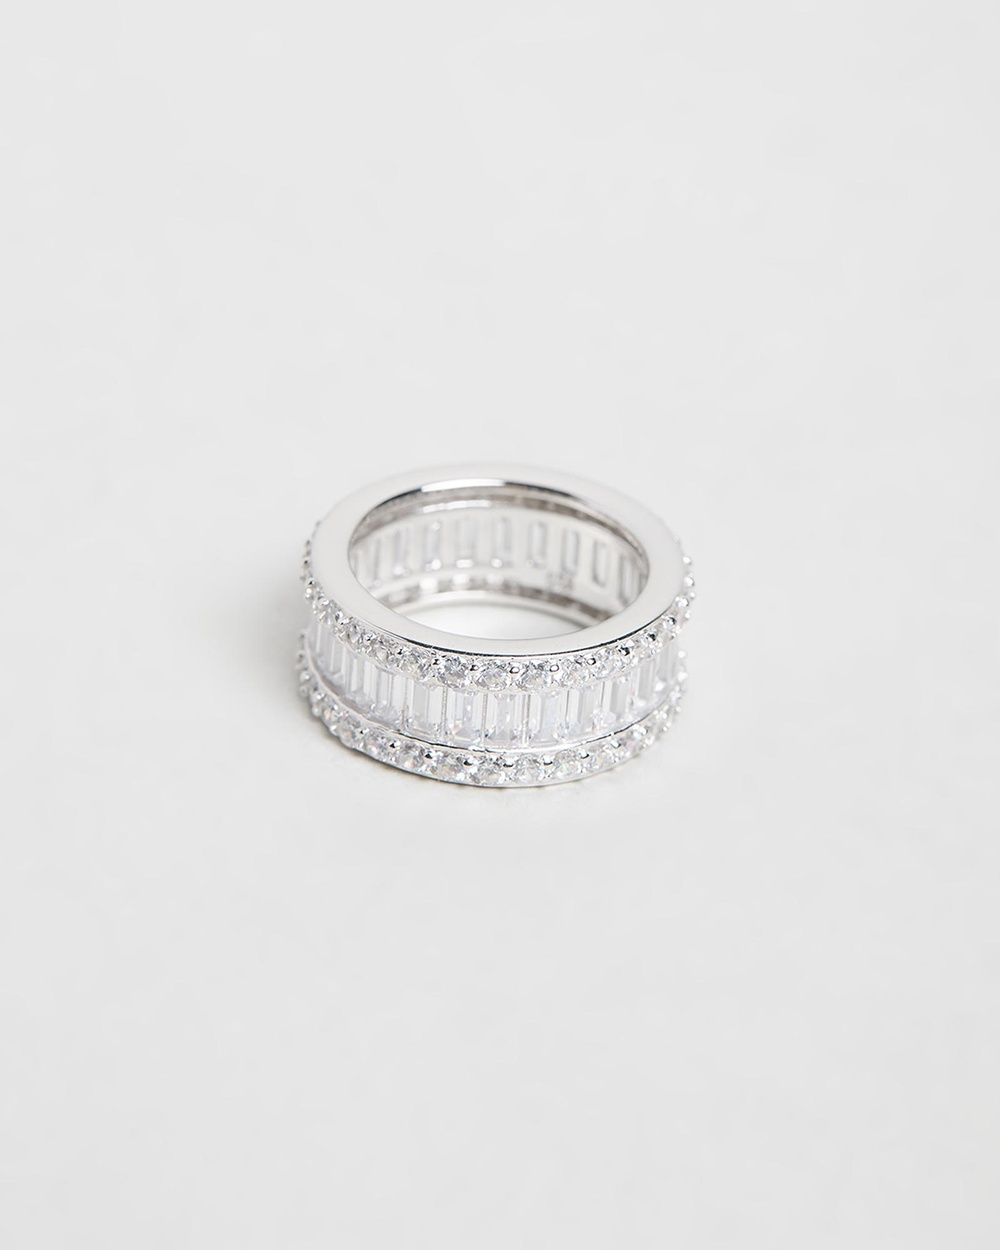 Bianc Eclipse Ring Jewellery Sterling Silver Rhodium Plated